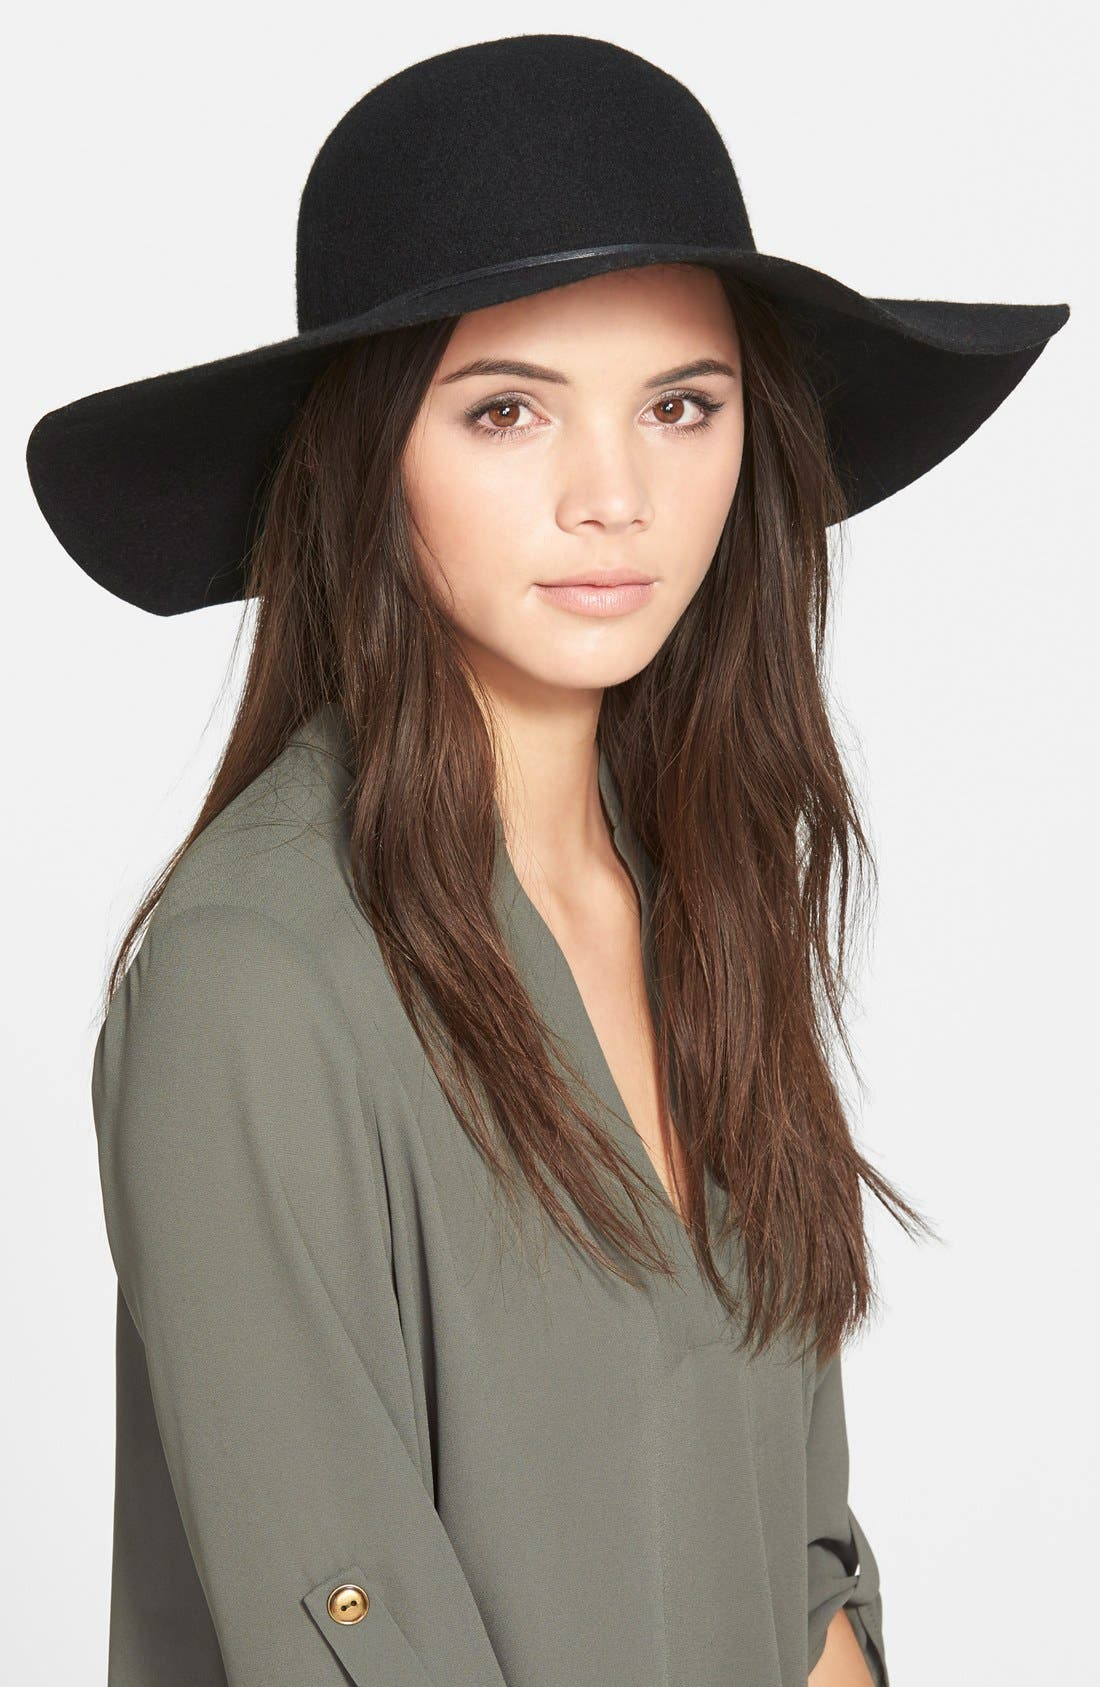 Main Image - BP. Rope Trim Floppy Felt Hat